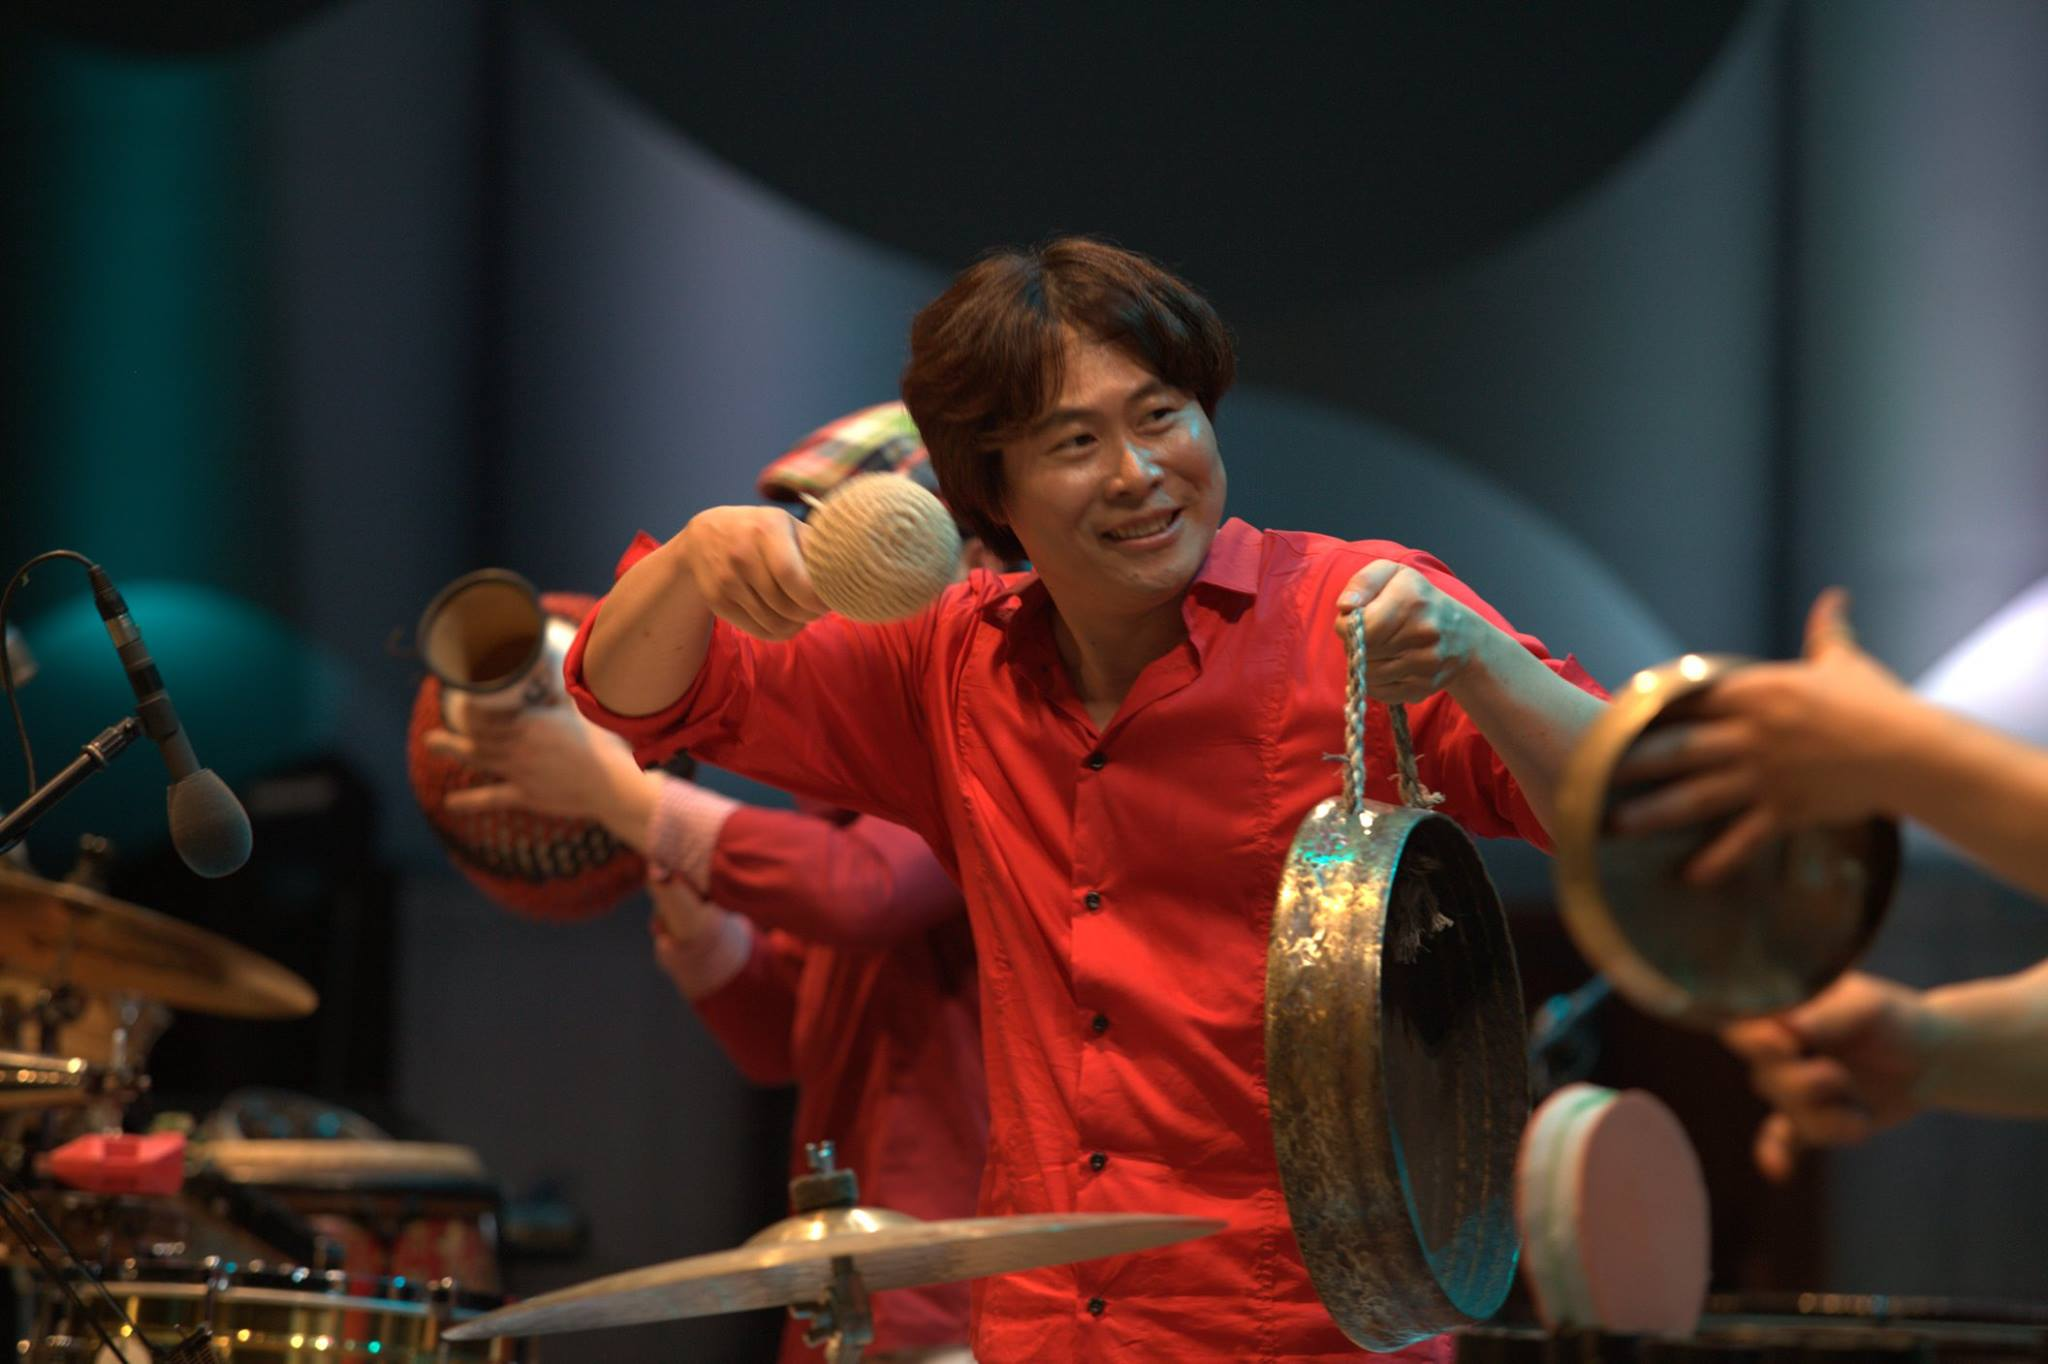 Top talents from Korea and best drummers in the world converge on the stage ofSeoul Drum Festival